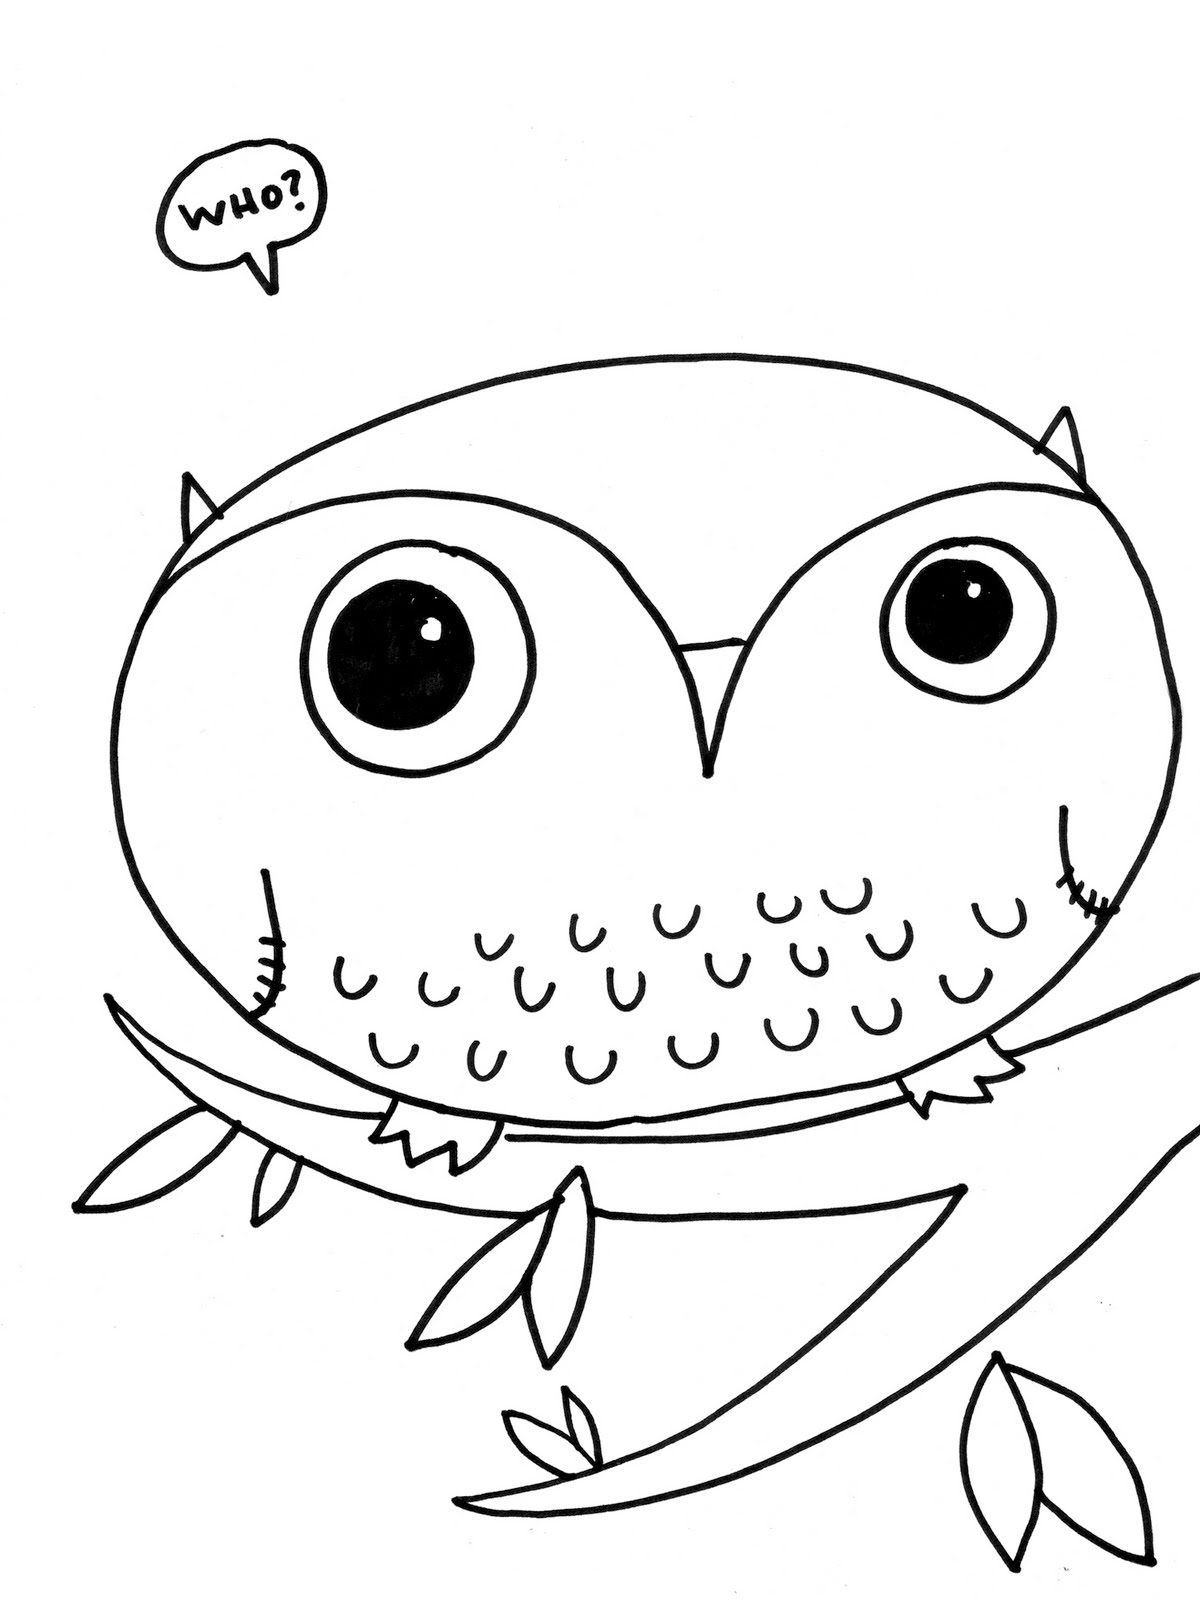 Free Printable Owl Coloring Pages For Kids Coloring Pages For Free